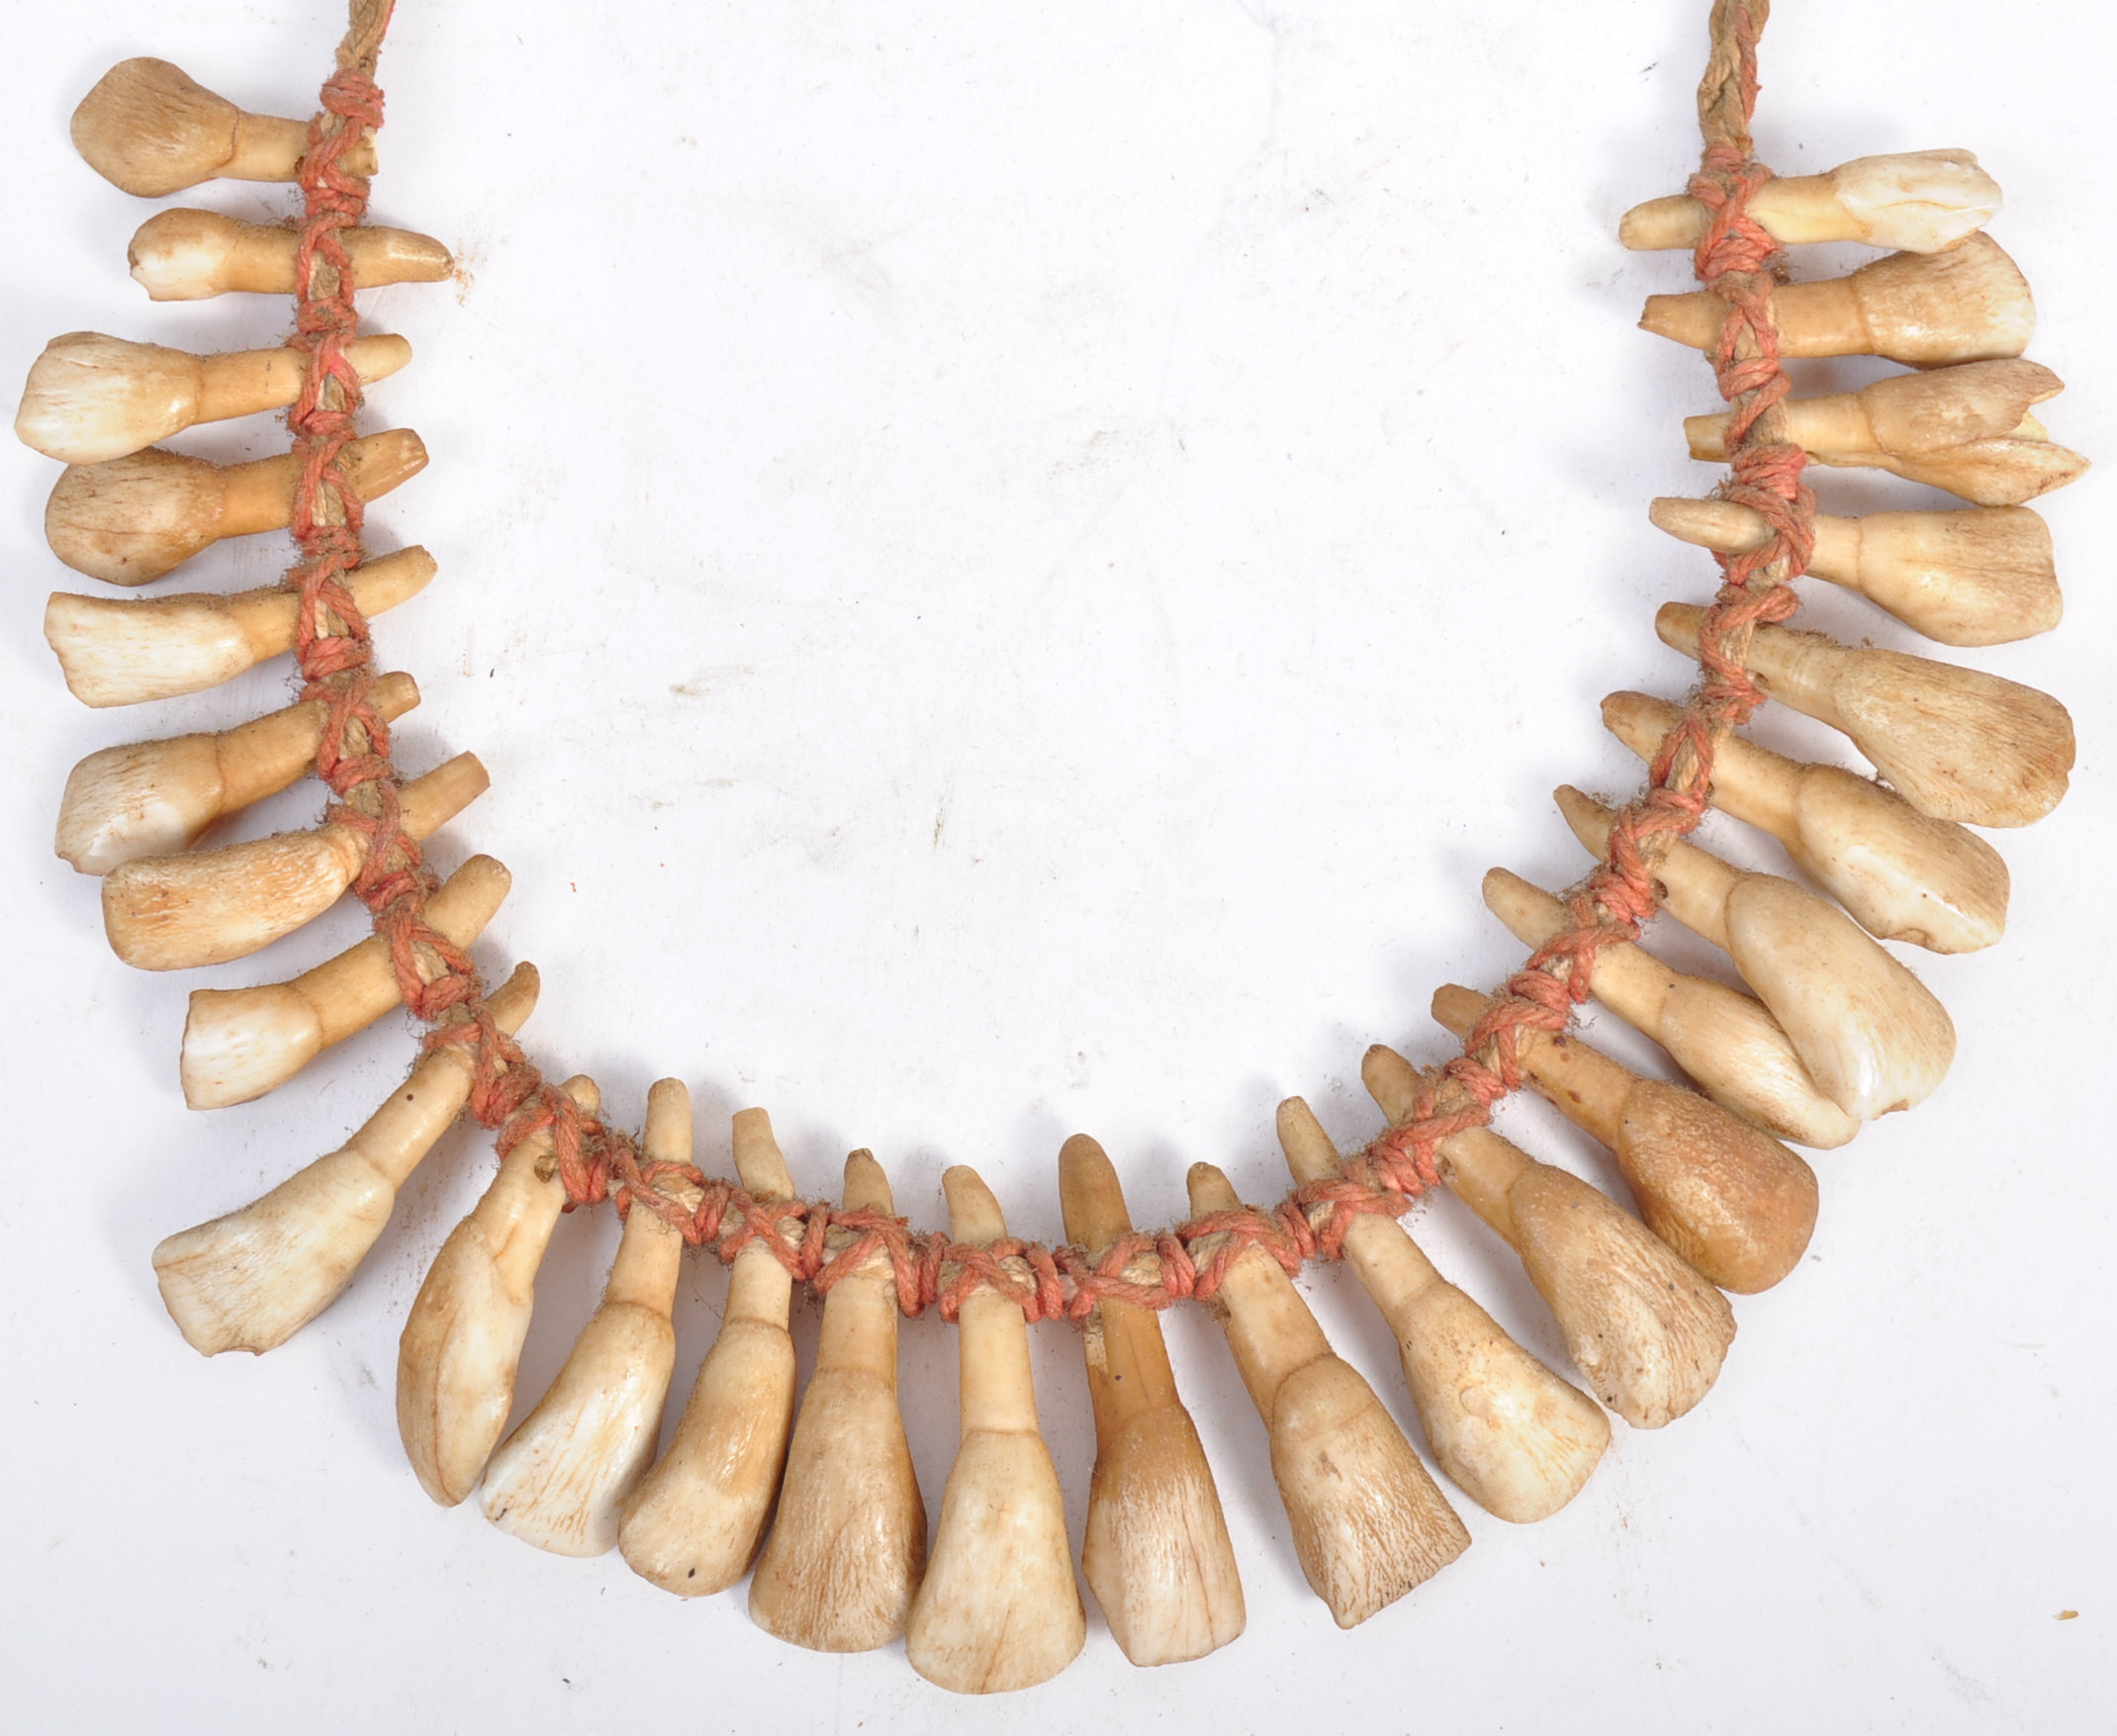 TRIBAL ANTIQUITIES - 19TH CENTURY AFRICAN TOOTH NECKLACE - Bild 7 aus 7